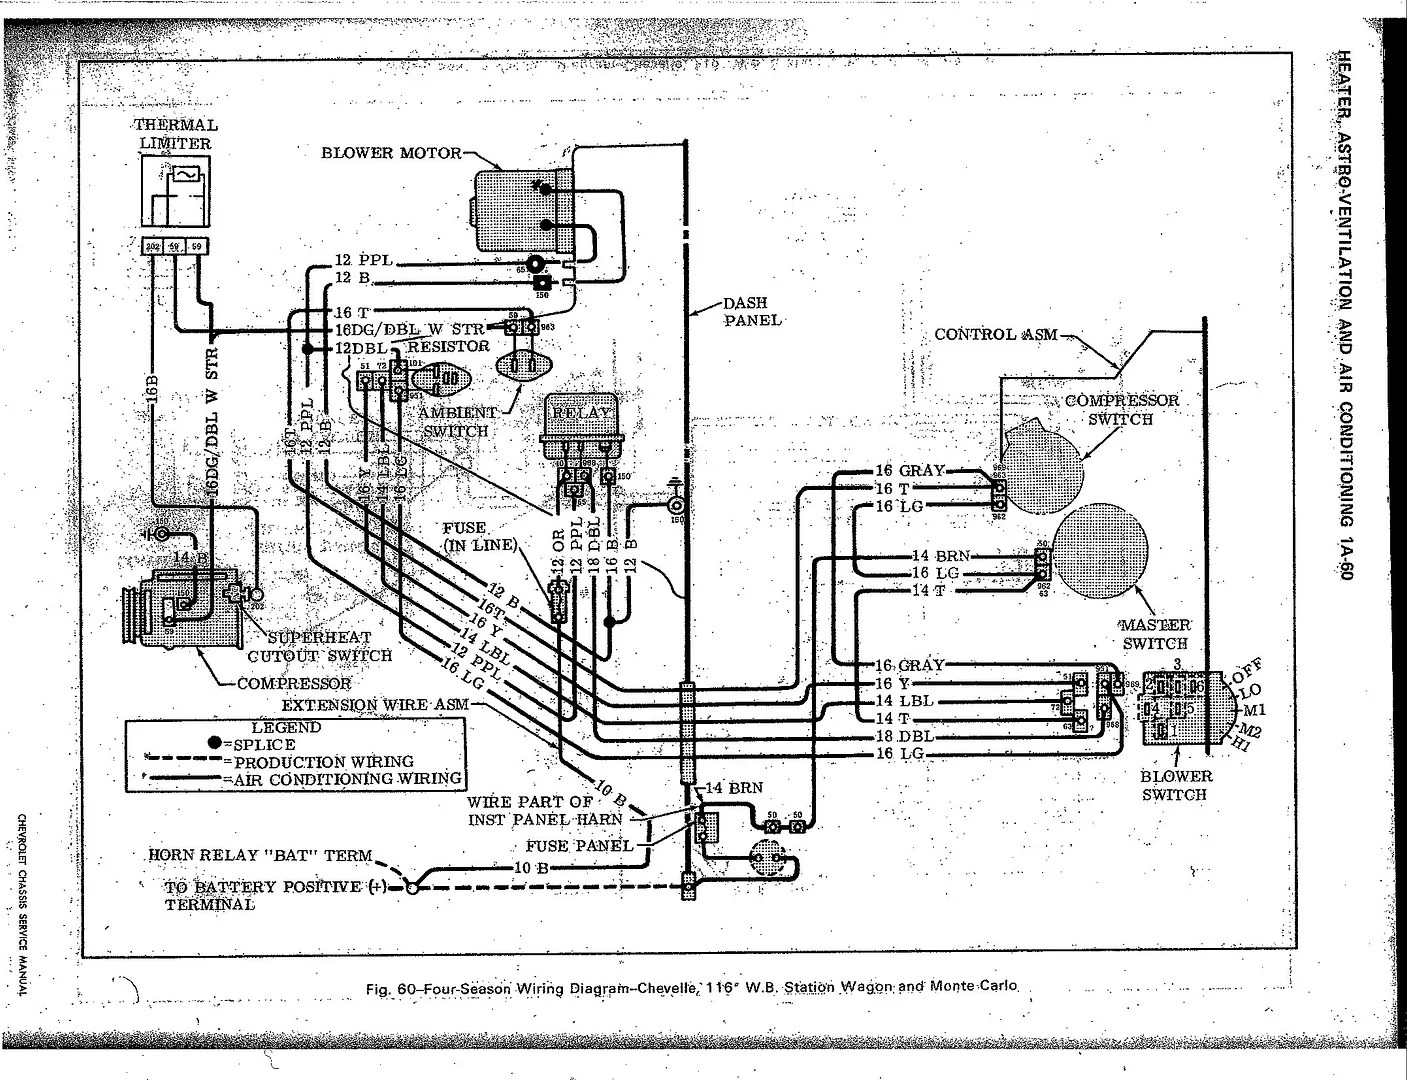 hight resolution of blower motor wiring diagram 72 chevelle 39 wiring 1972 el camino wiring schematic 1984 el camino